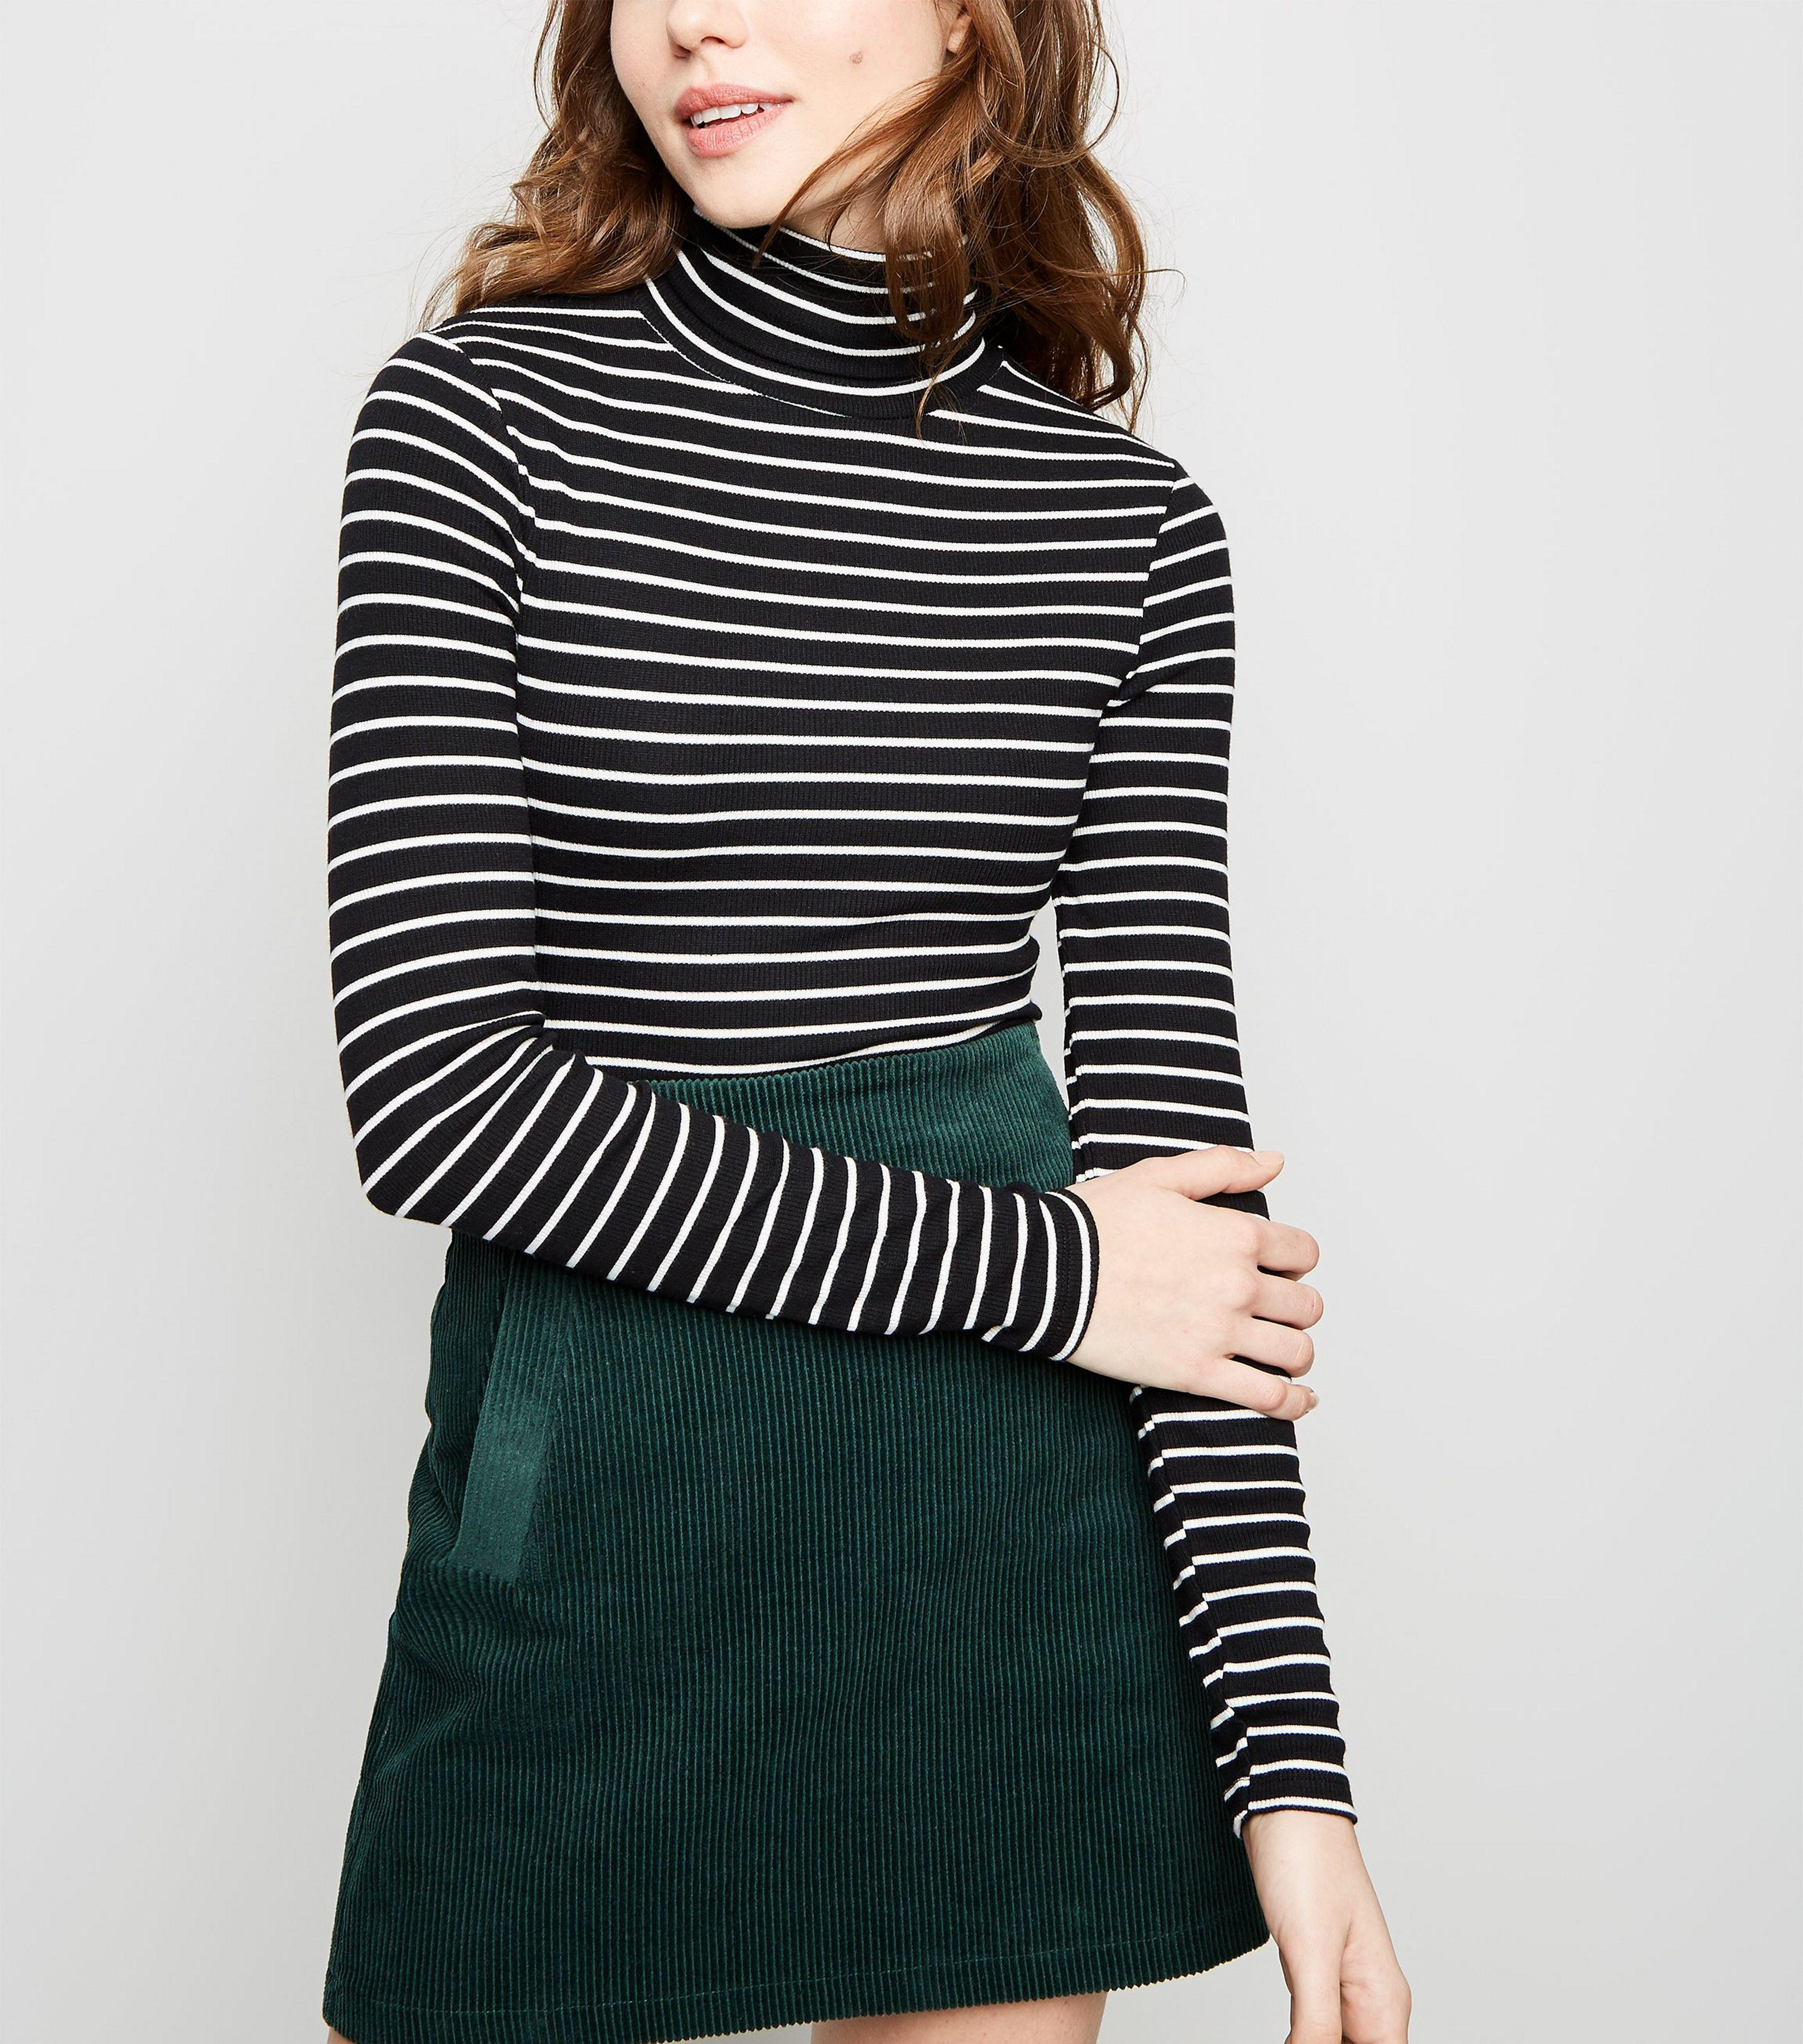 d033a4a43 New Look Black Stripe Ribbed Roll Neck Top in Black - Lyst